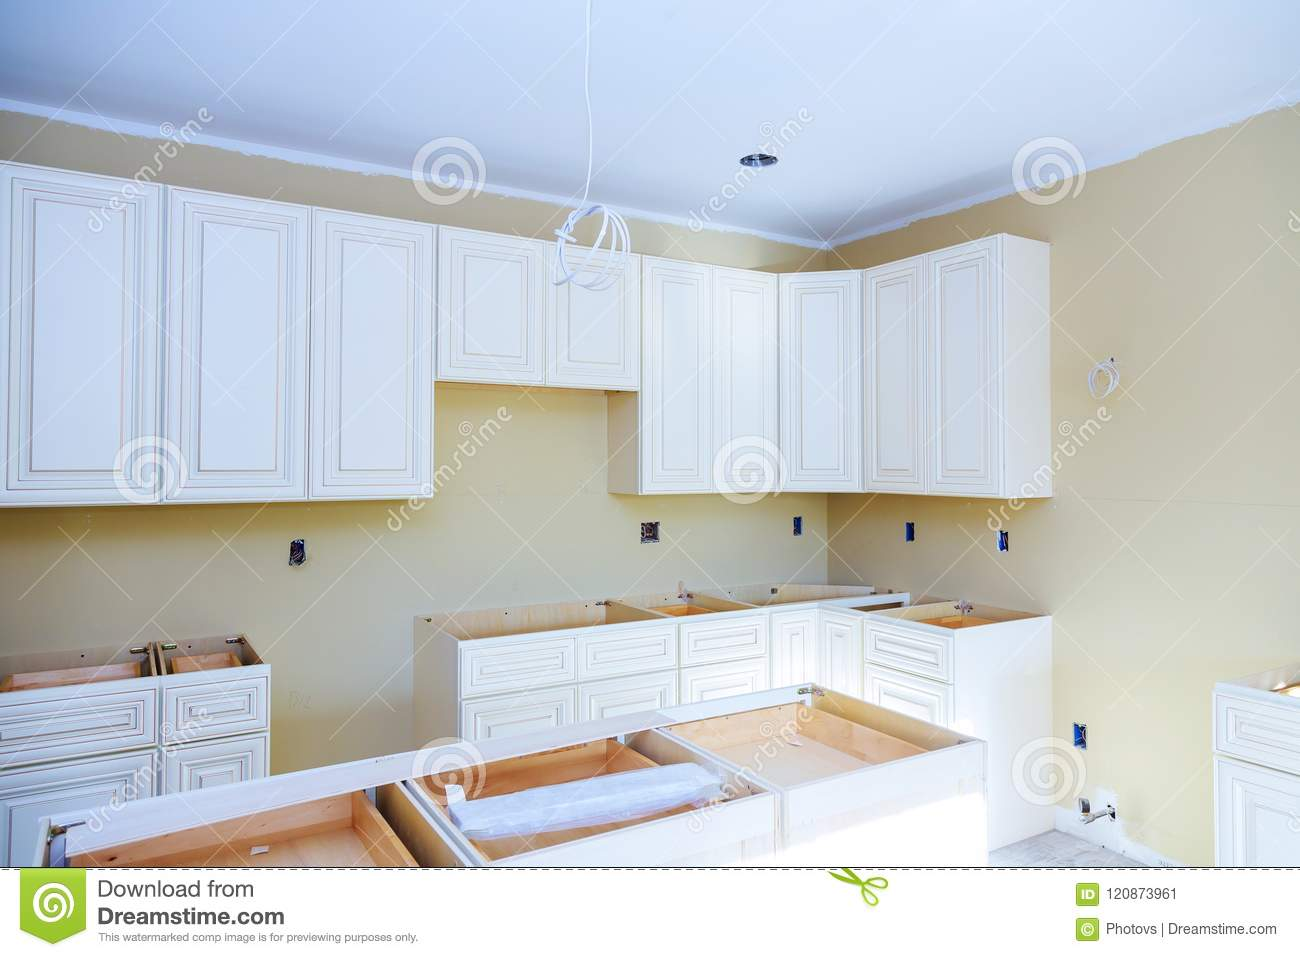 Blind Cabinet Island Drawers And Counter Cabinets Installed